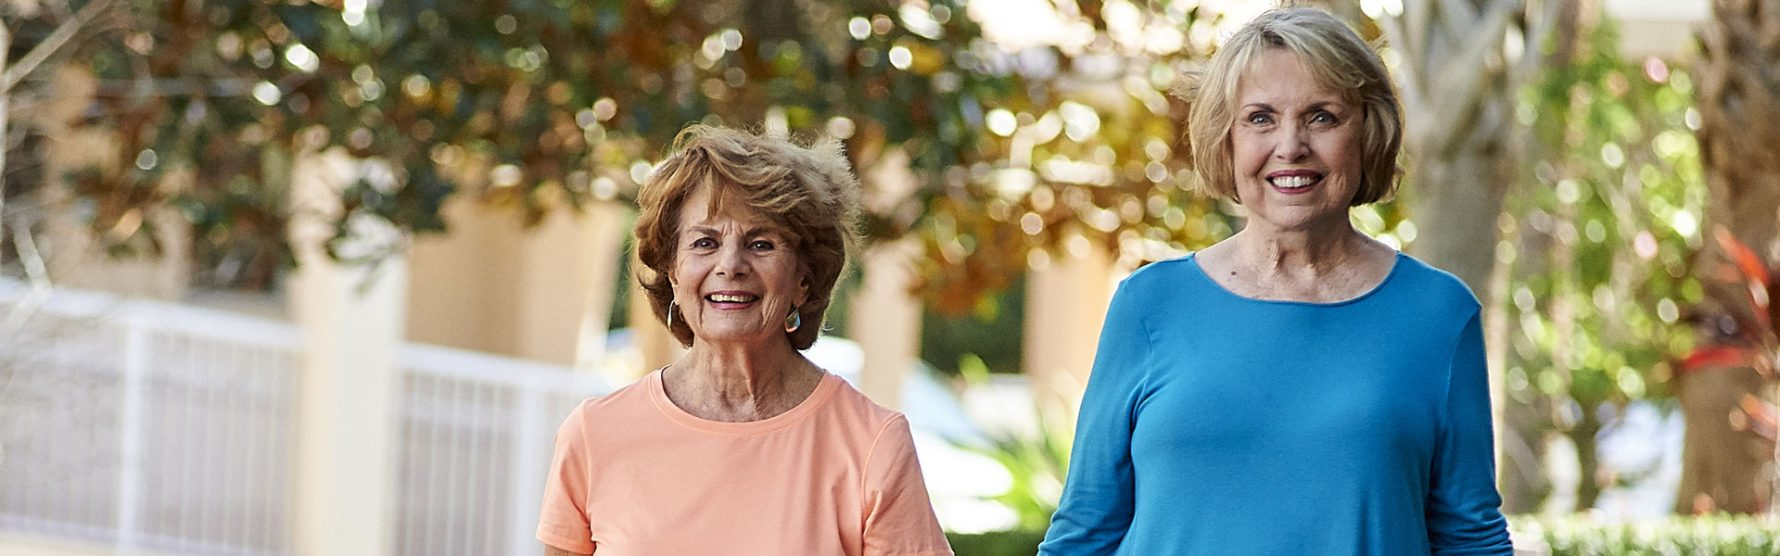 Two senior women walking outside